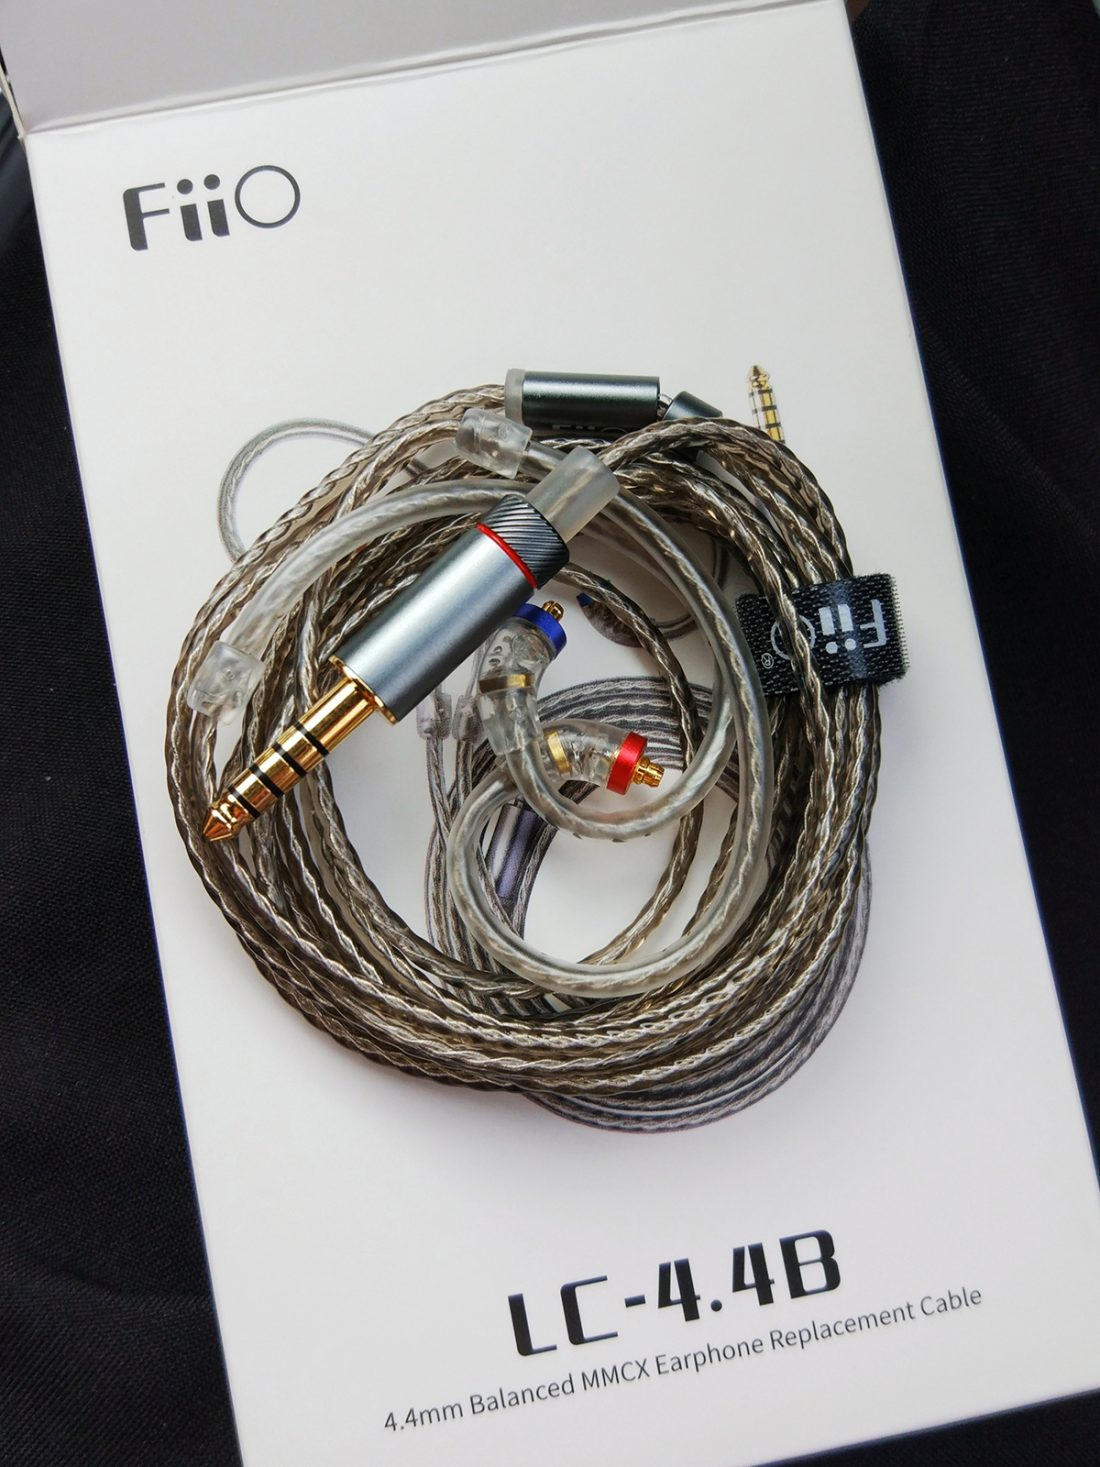 The 4.4mm coiled and roasted to perfection.